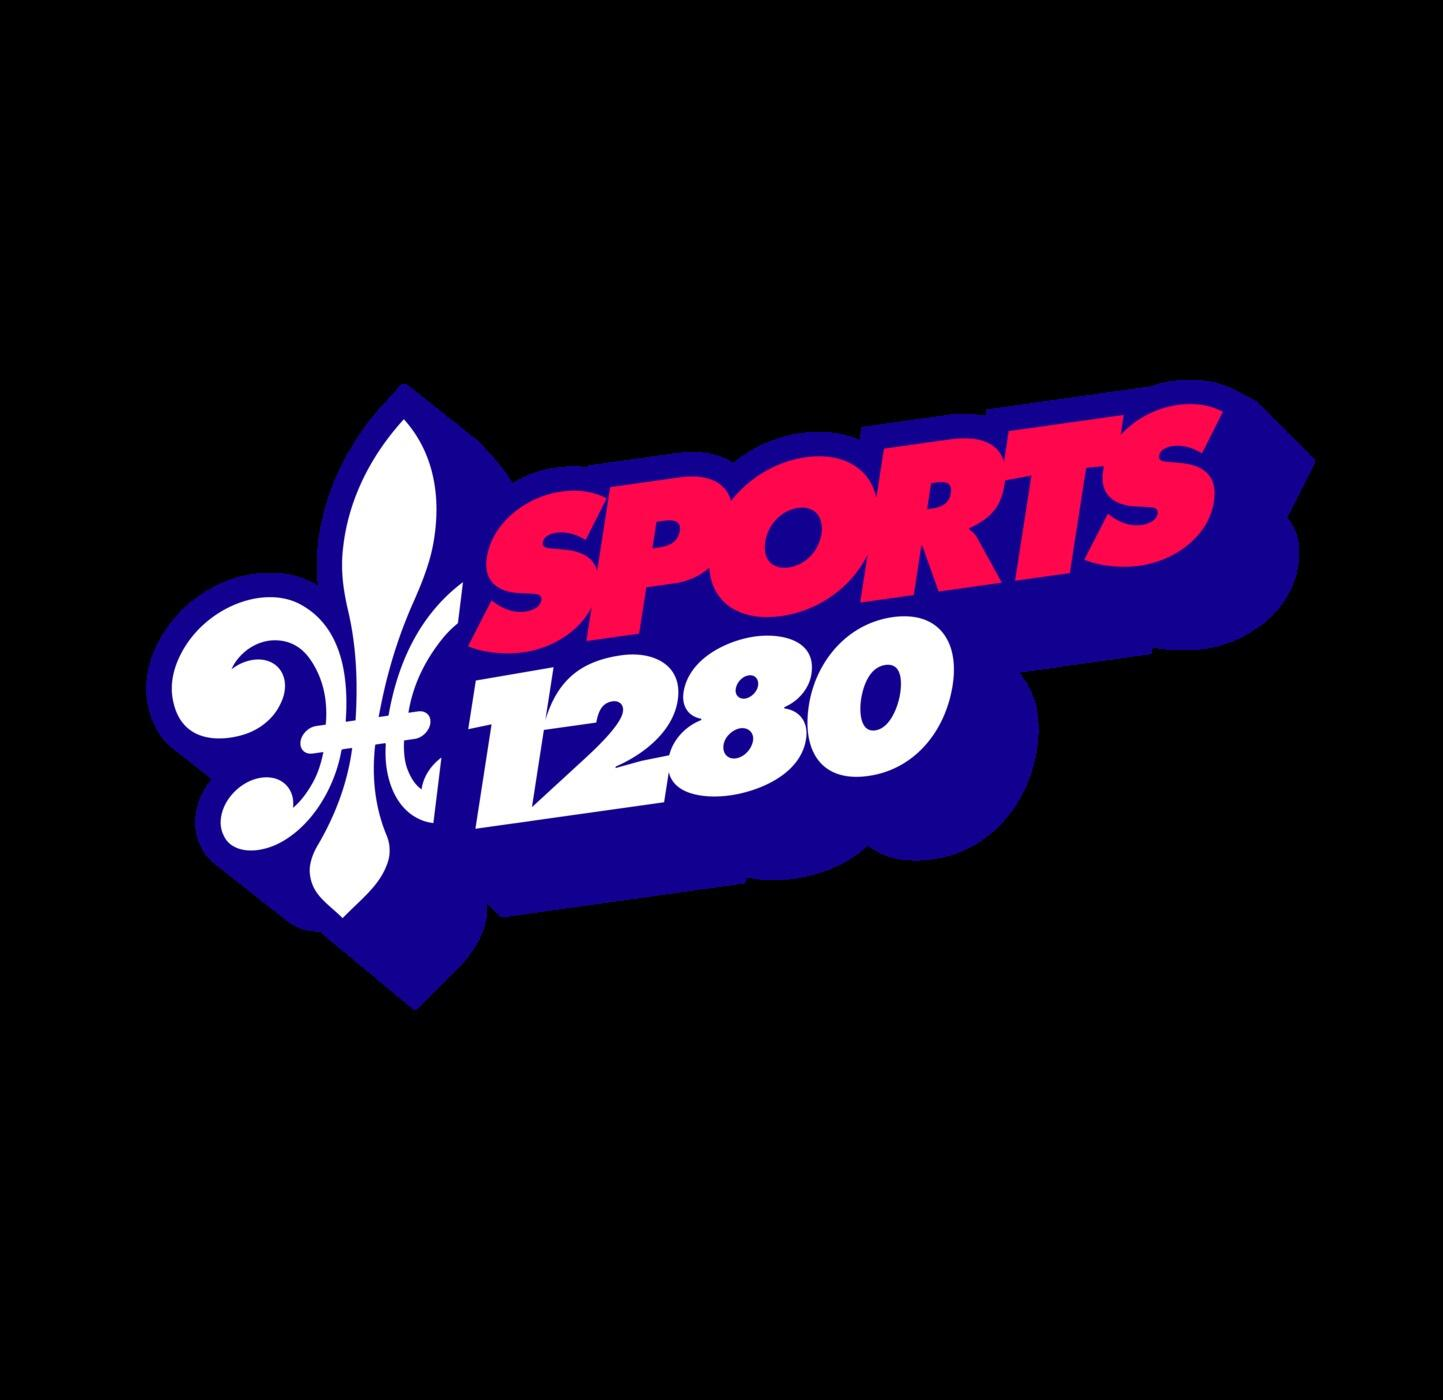 Listen to the Inside New Orleans With Eric Asher Episode - Eric Asher Live at Katie's Restaurant on iHeartRadio | iHeartRadio